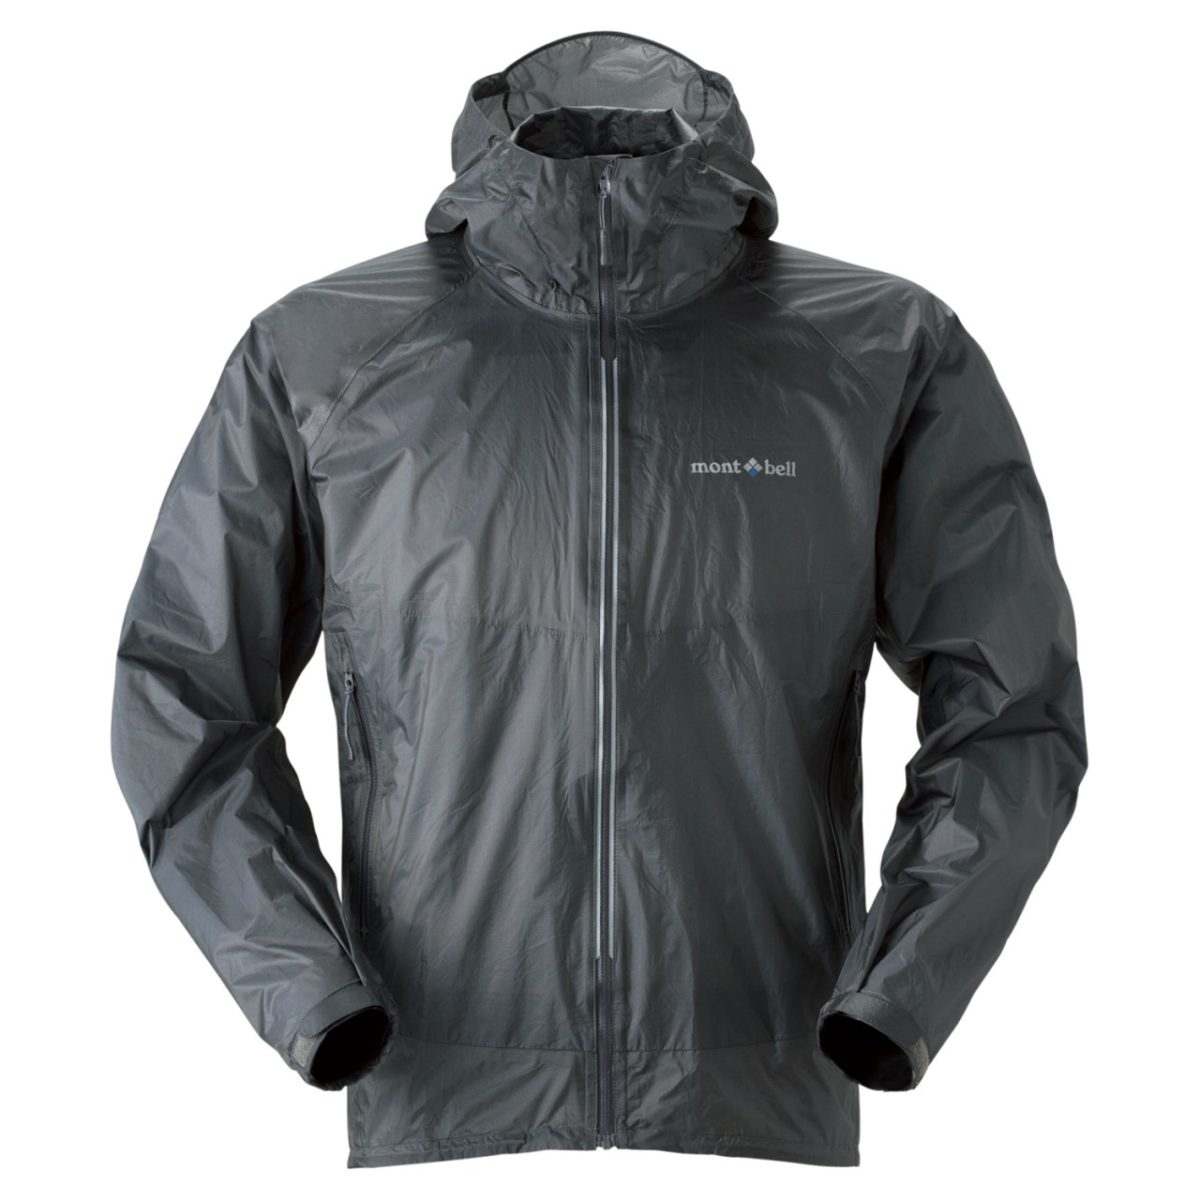 5 of the best lightweight packable rain jackets – Snarky Nomad